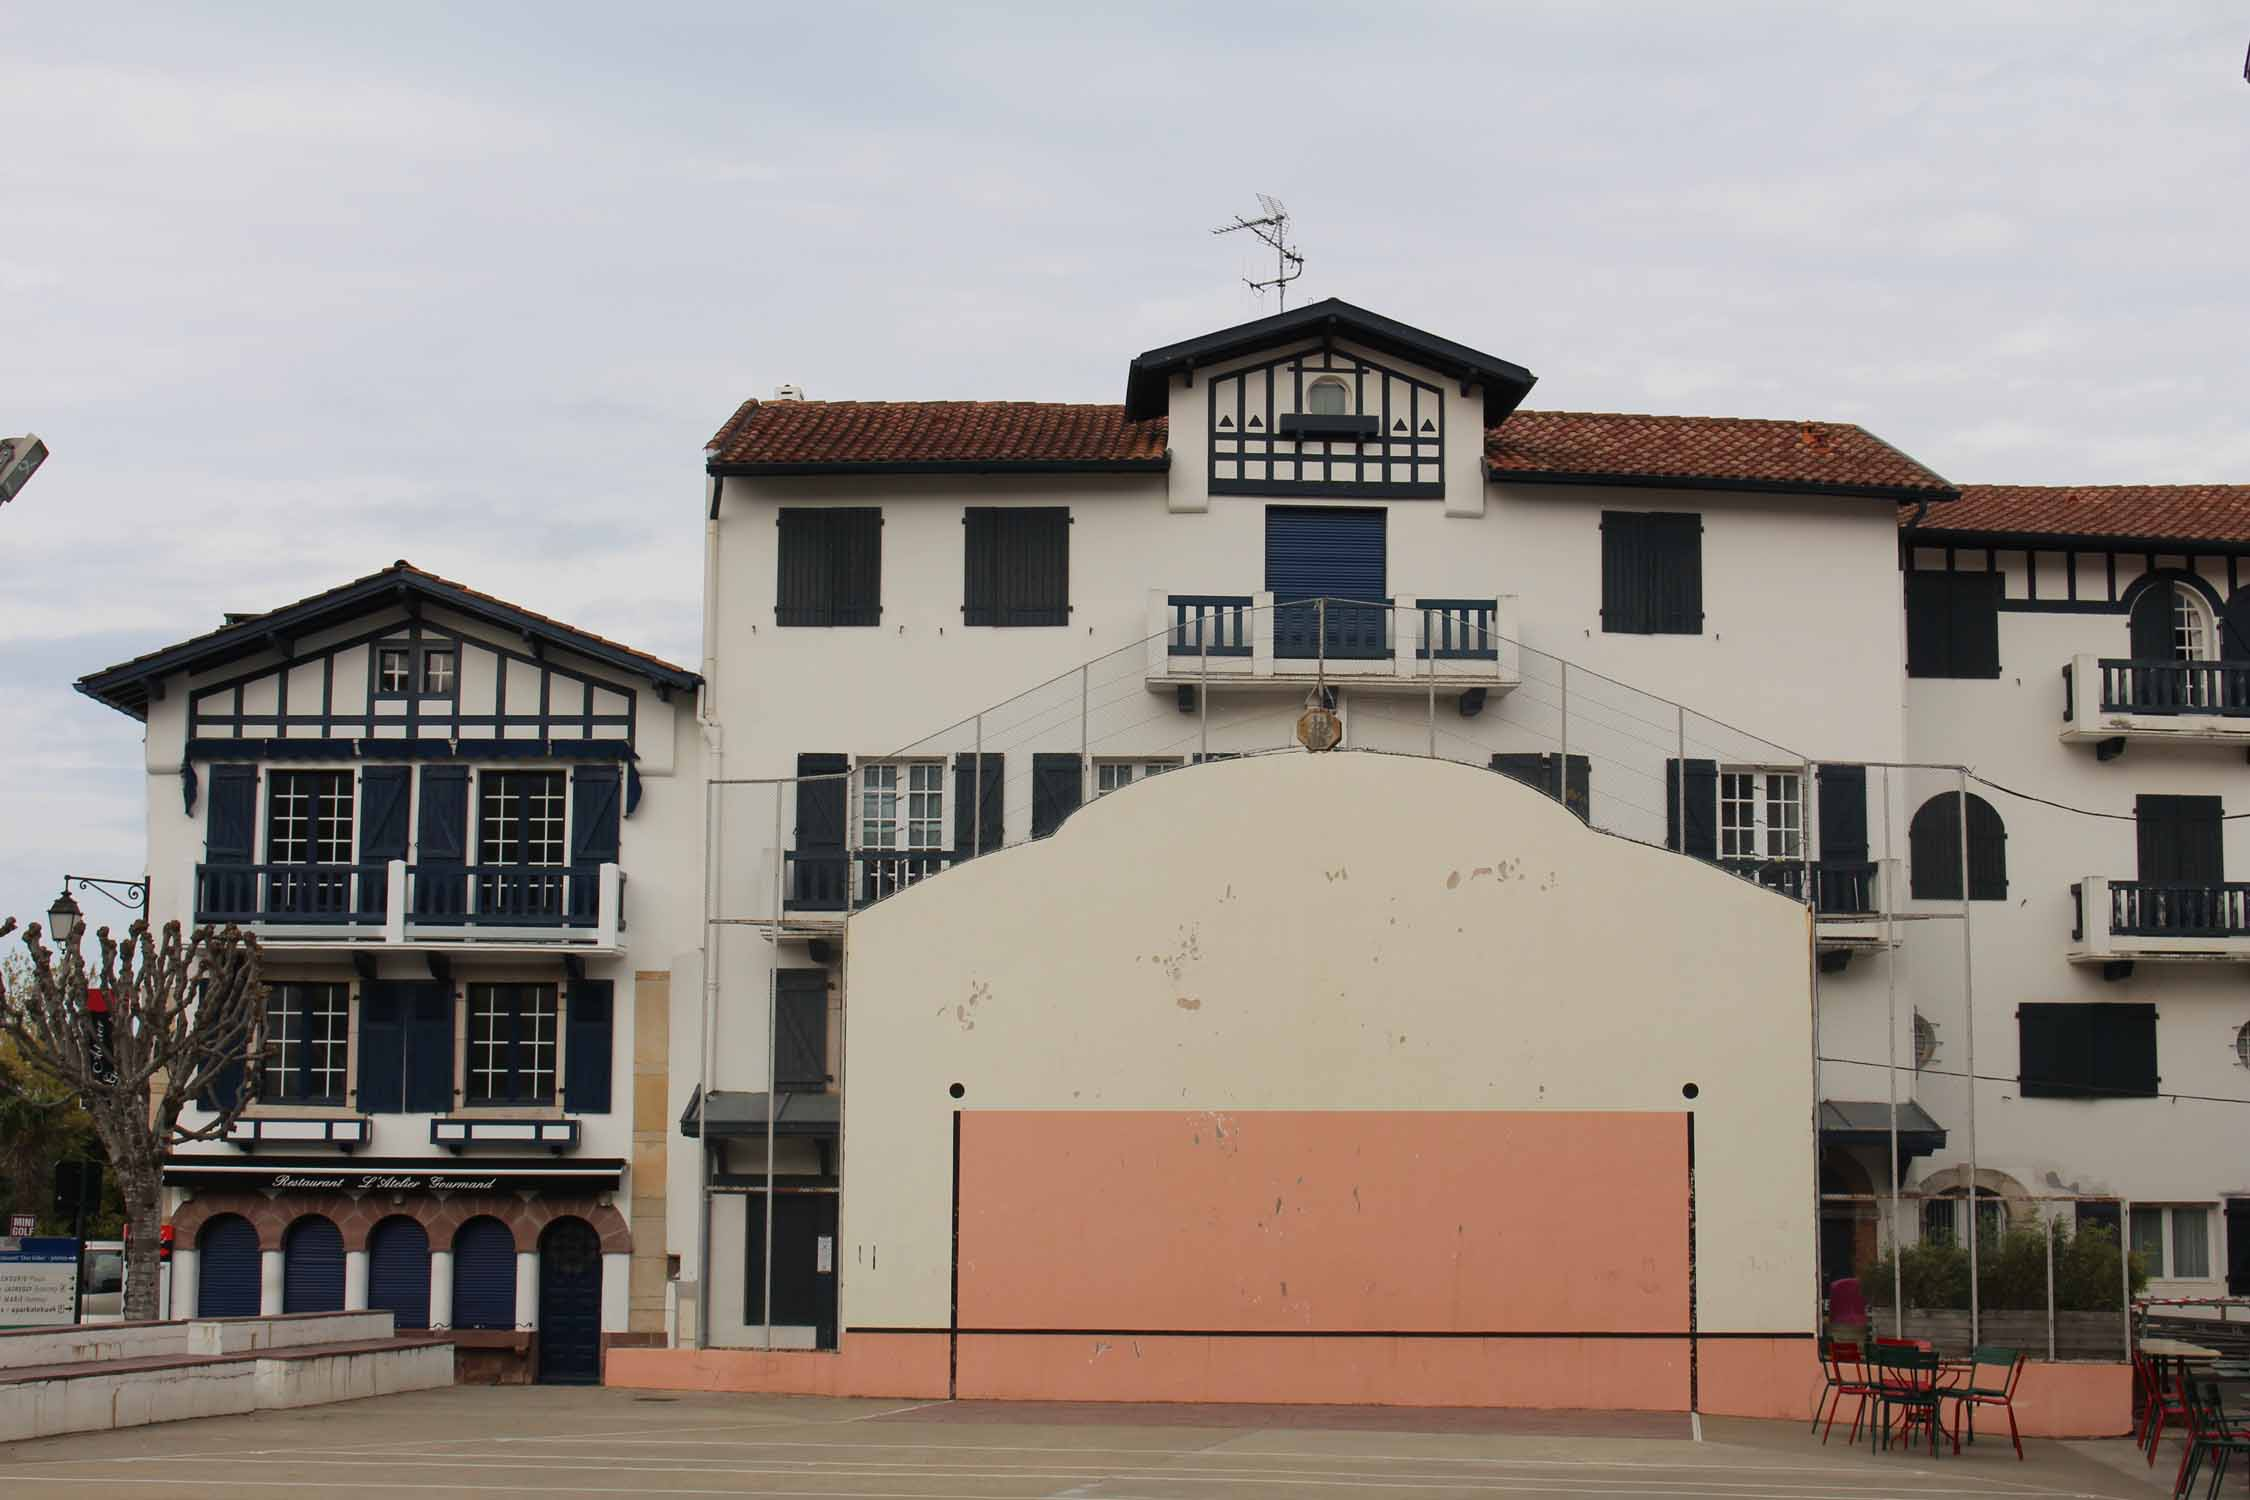 Ascain, Basque Country, fronton